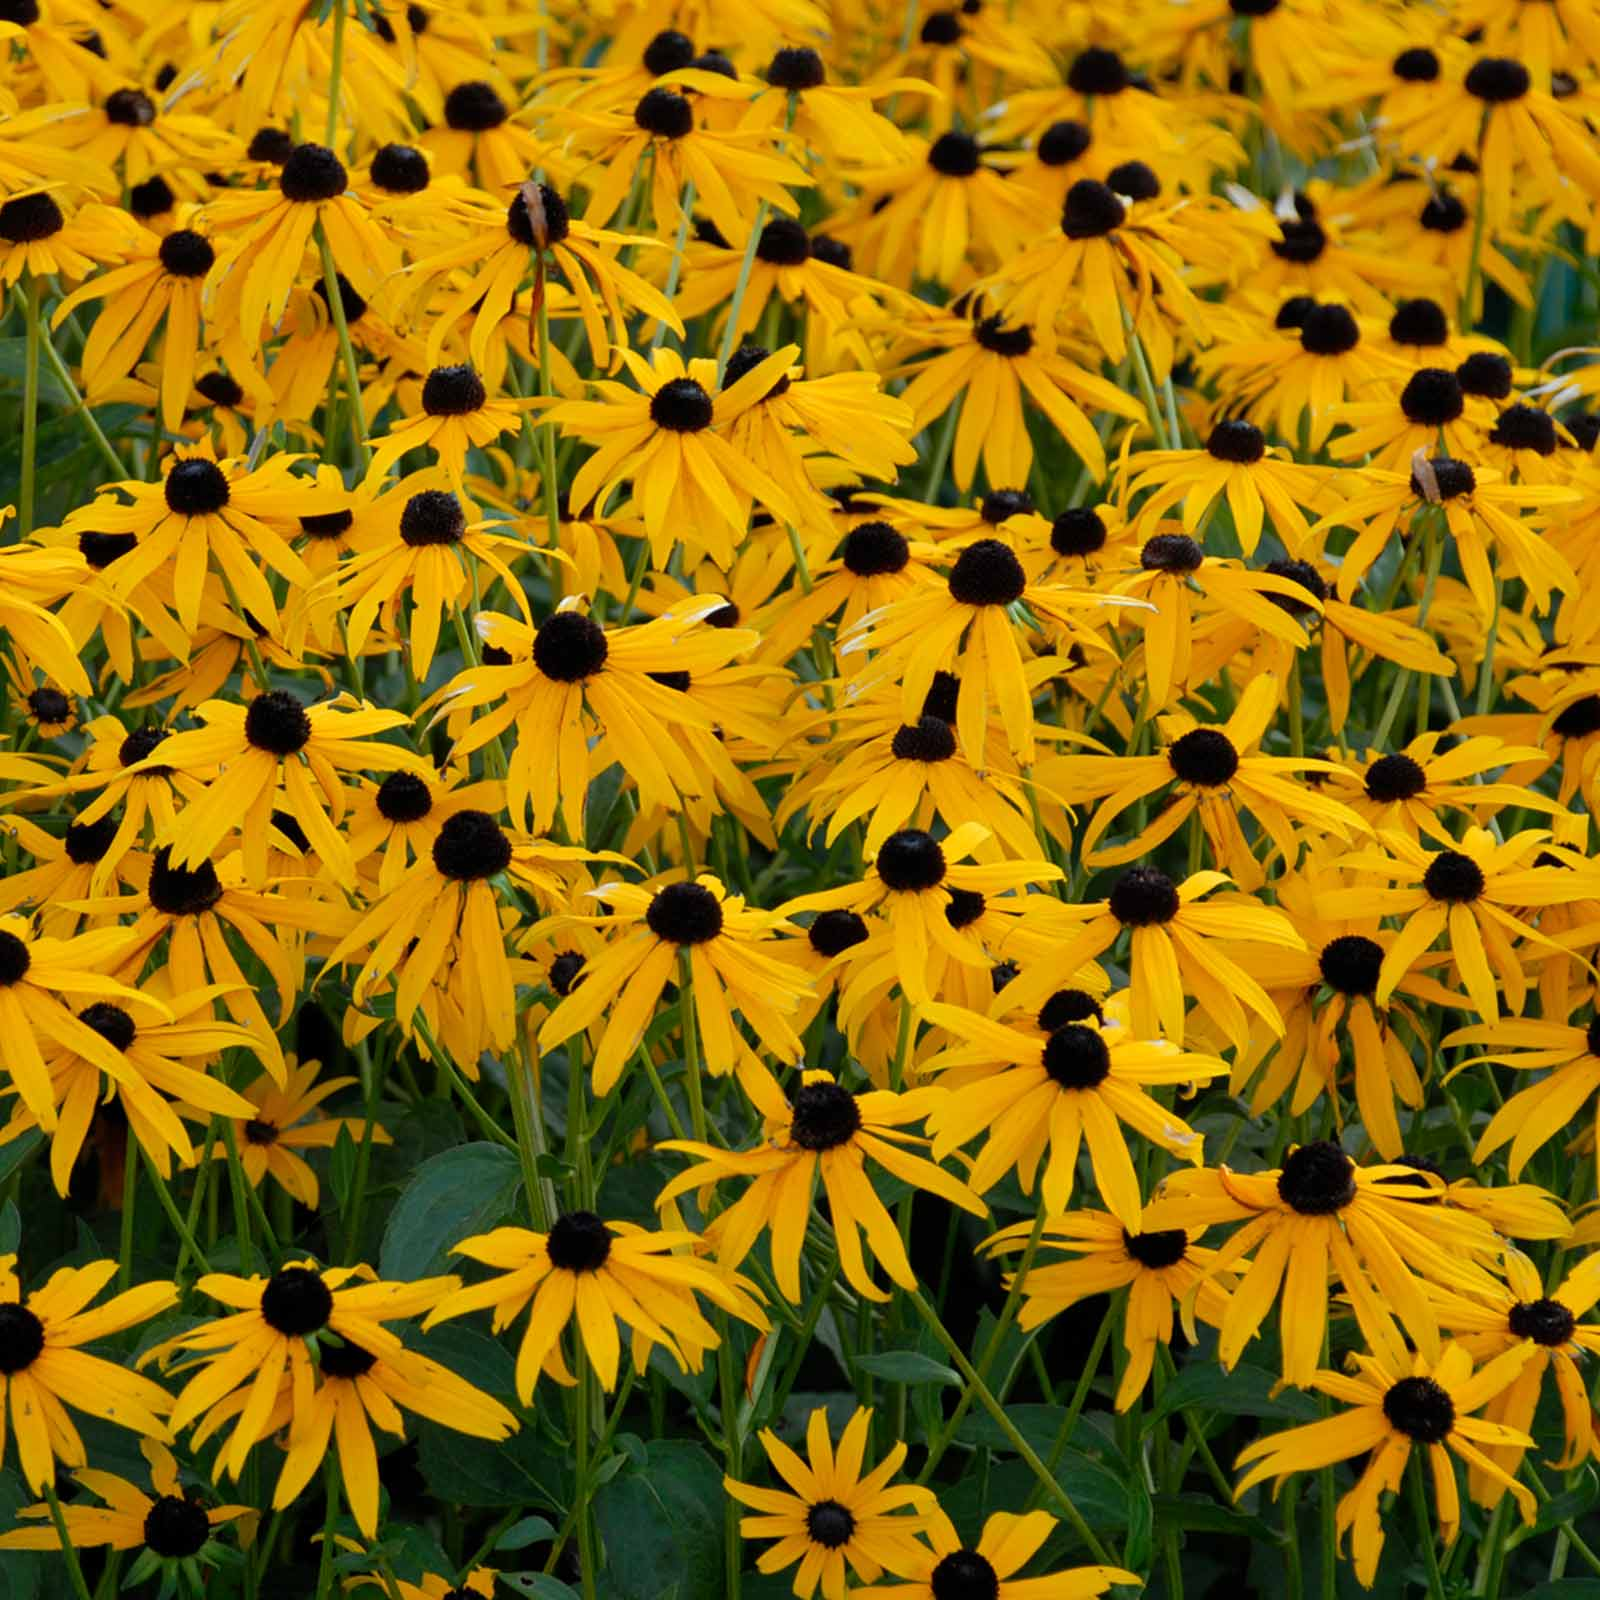 Rudbeckia black eyed susan seeds goldsturm sunset 500 seeds rudbeckia black eyed susan seeds goldsturm sunset 500 seeds yellow blooms mightylinksfo